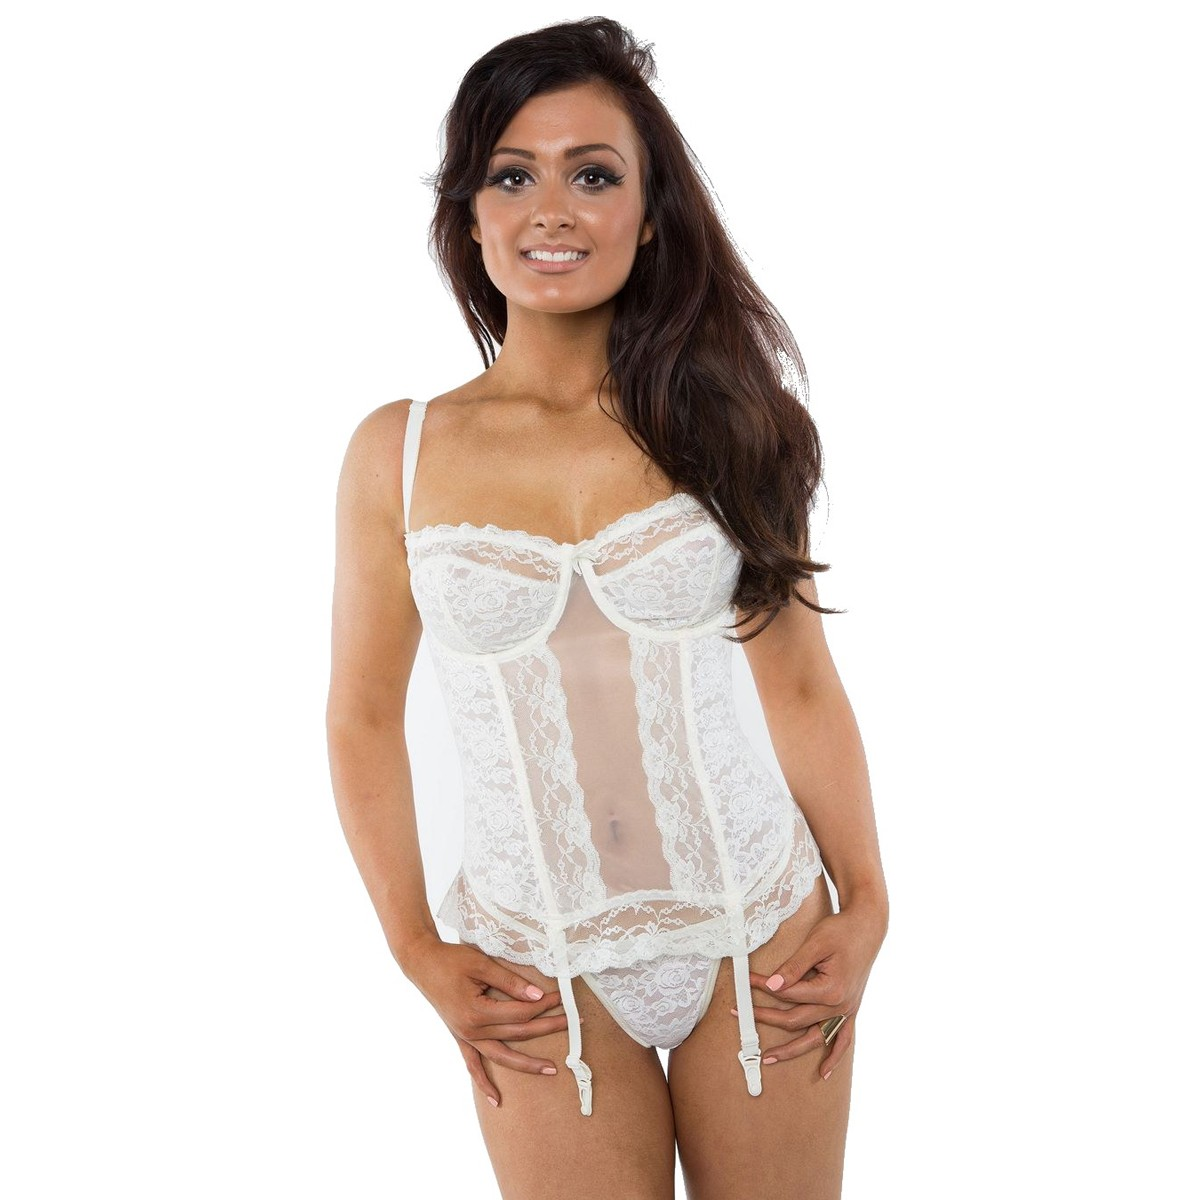 Gemm Lace Style Basque - White